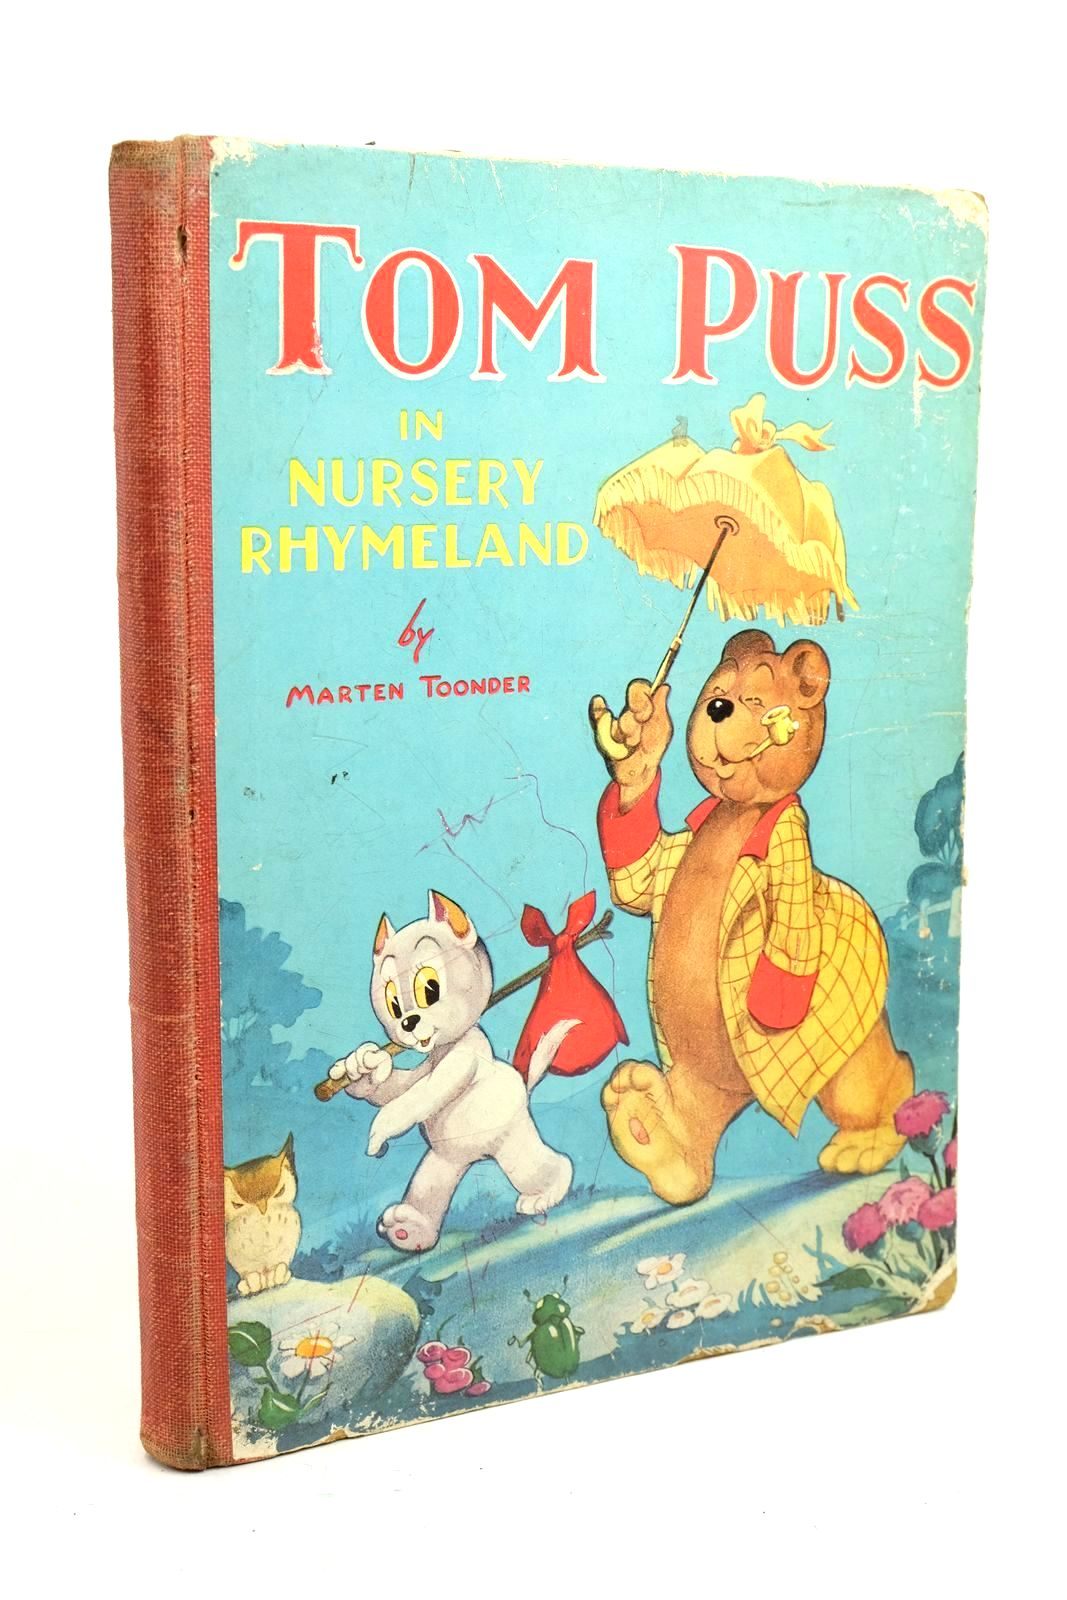 Photo of TOM PUSS IN NURSERY RHYMELAND written by Toonder, Marten illustrated by Toonder, Marten published by Marks and Spencer Limited (STOCK CODE: 1321152)  for sale by Stella & Rose's Books